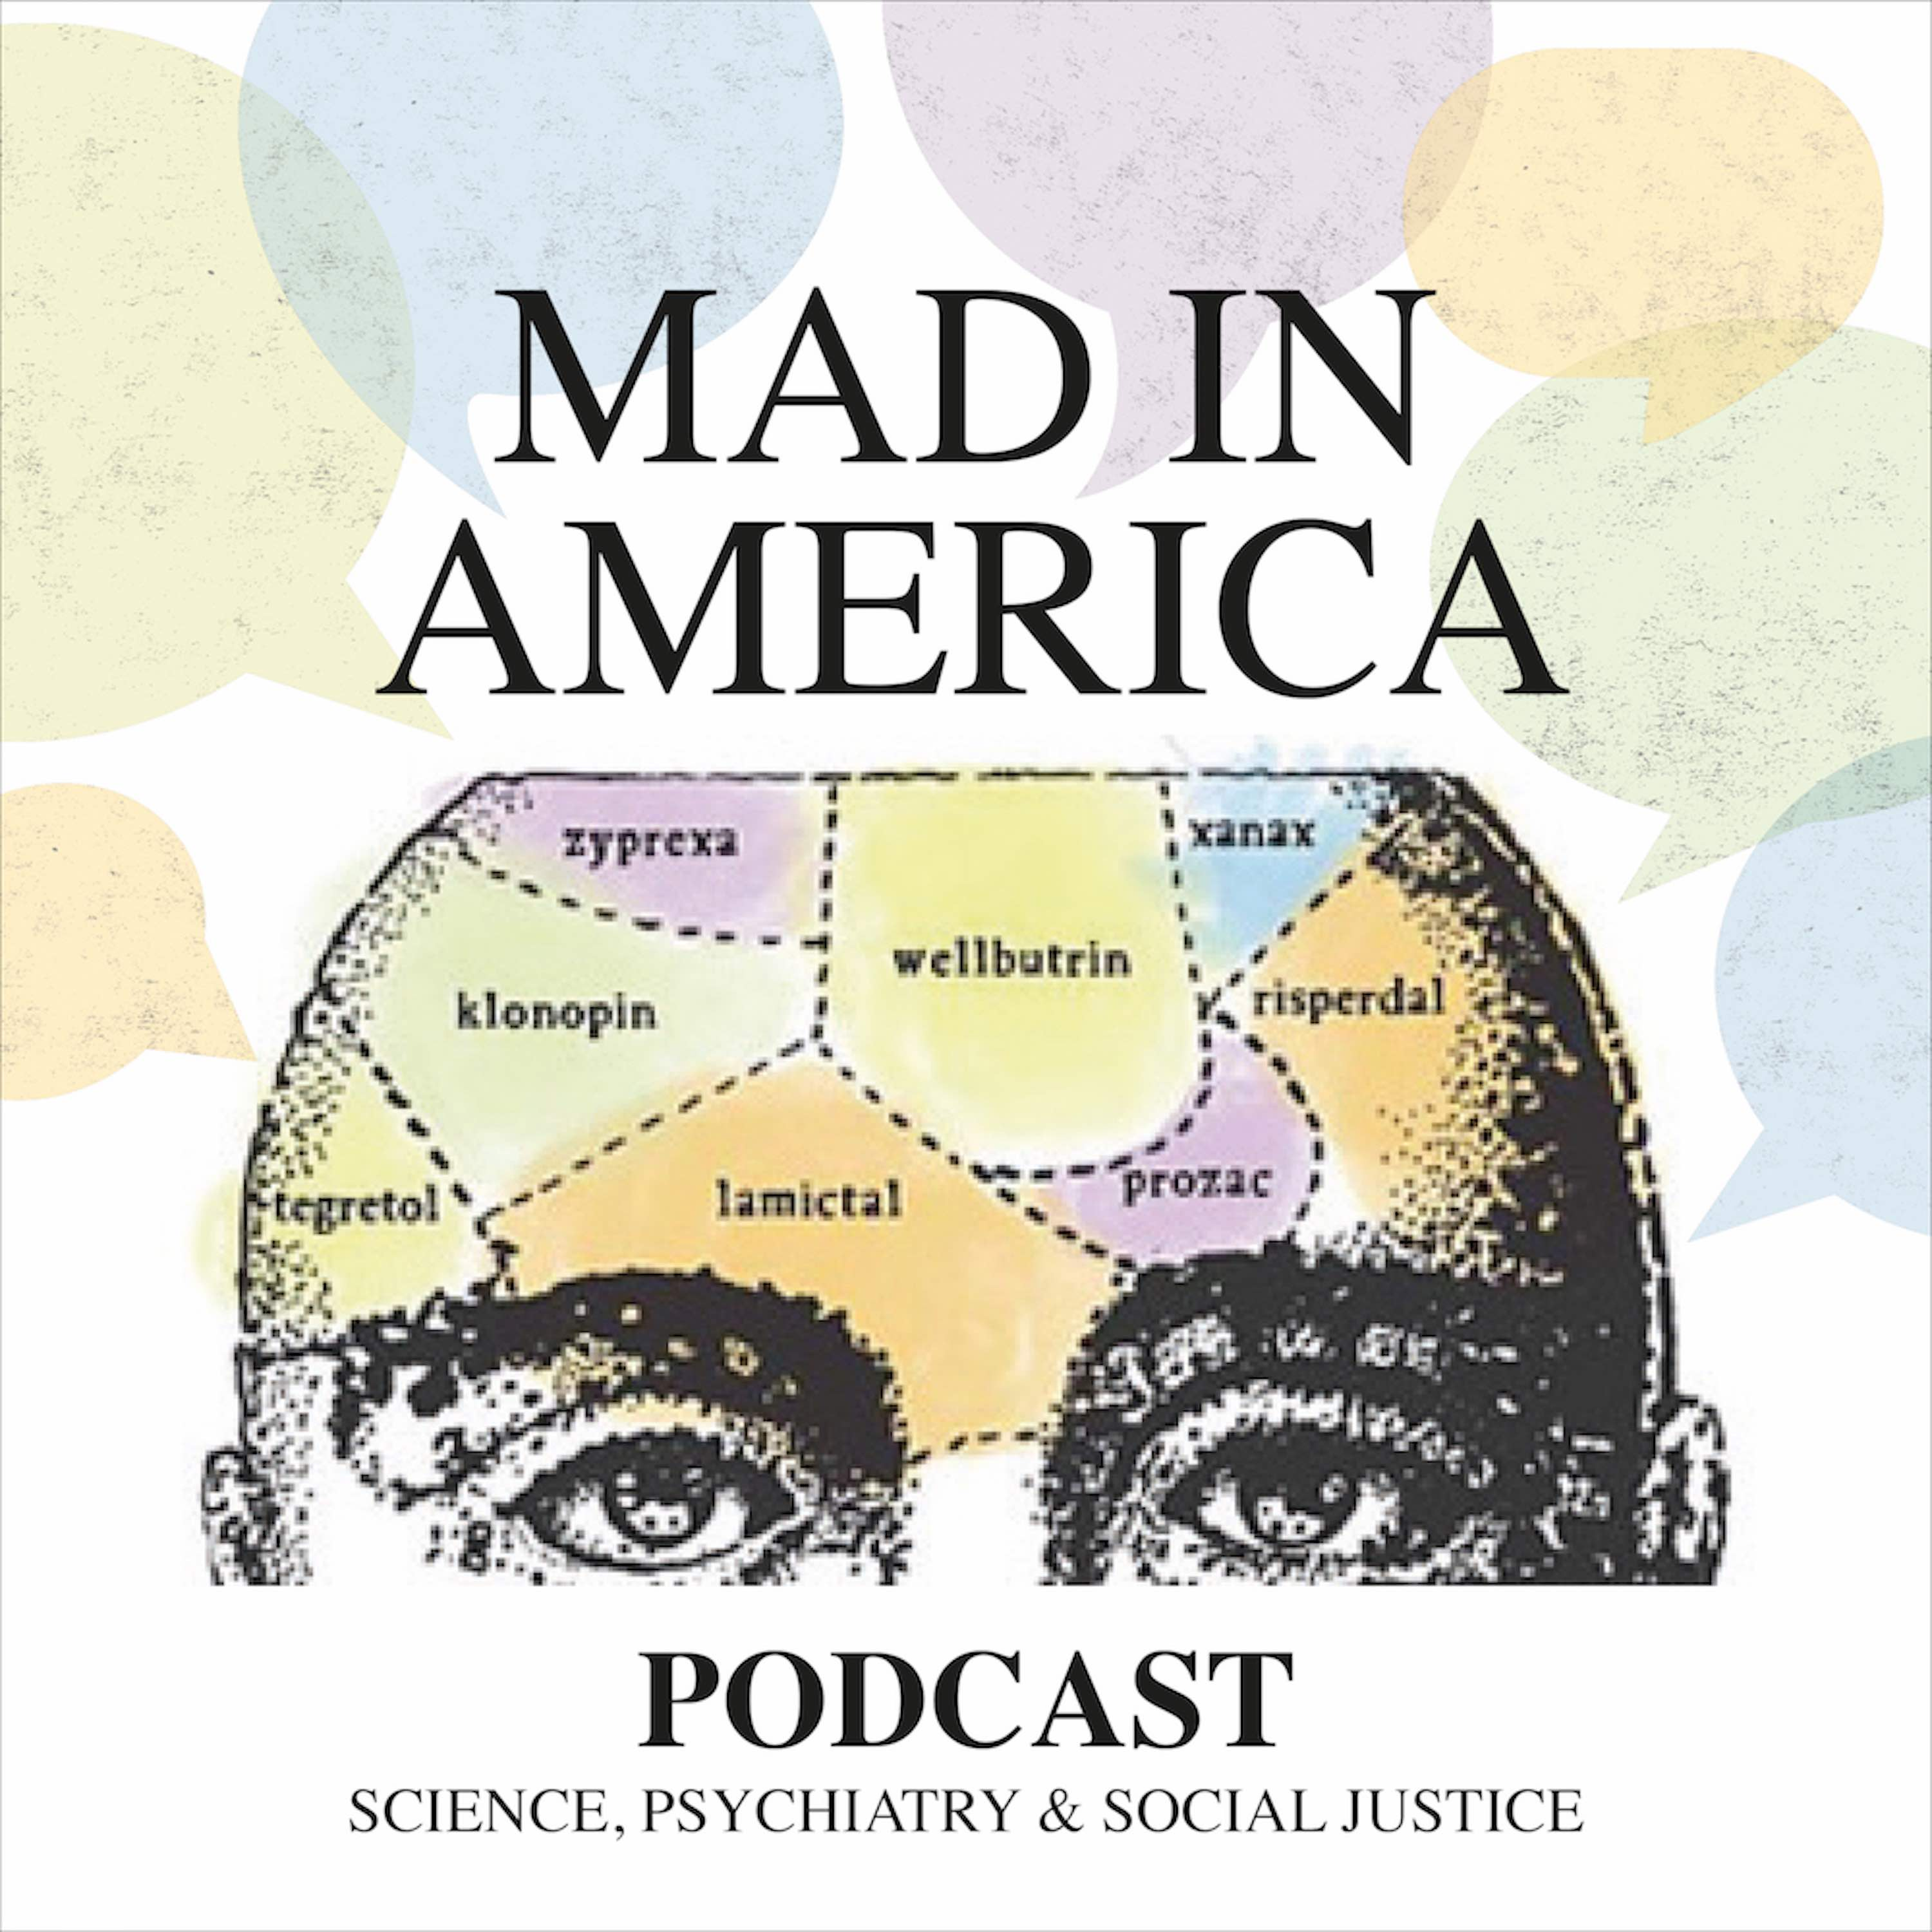 Mad in America: Rethinking Mental Health - Celia Brown - On Human Rights and Surviving Race